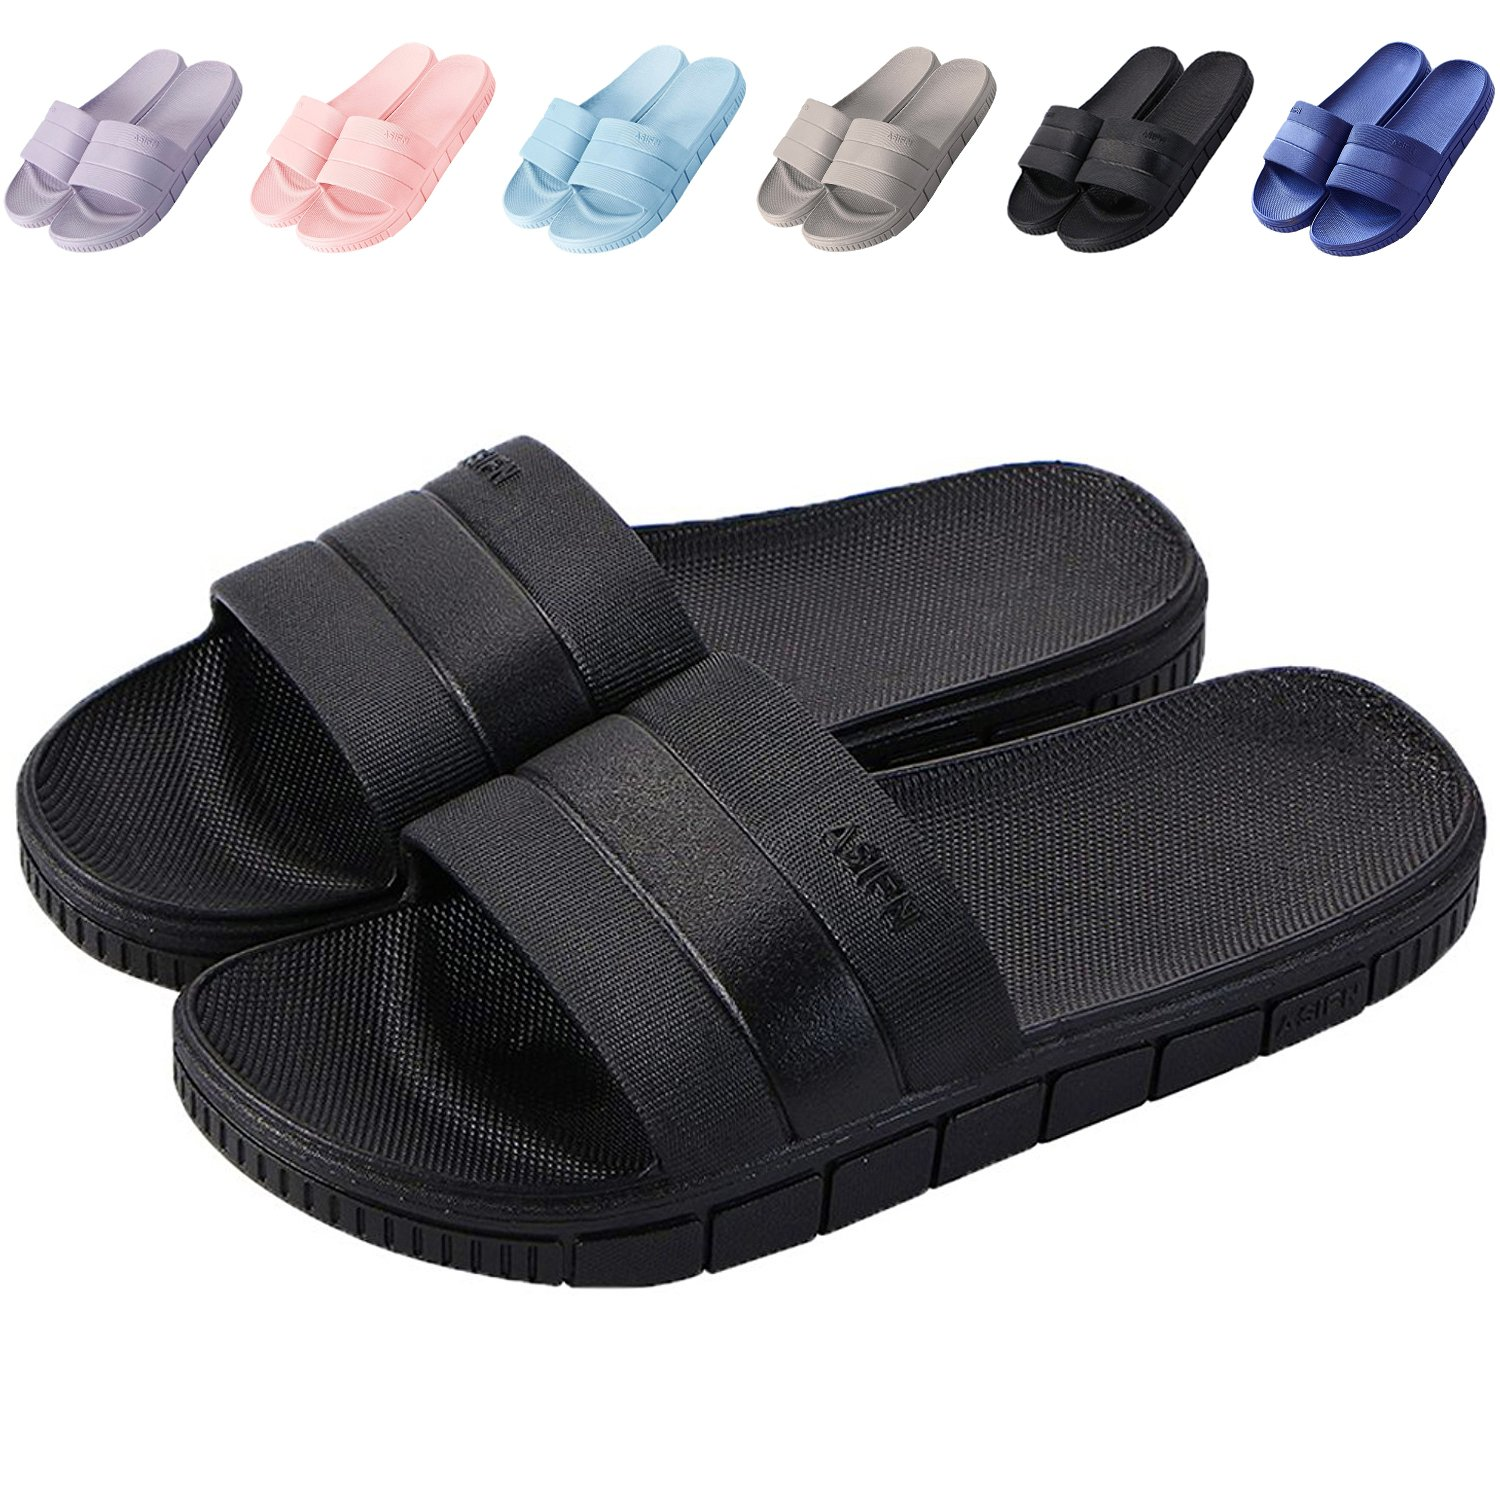 clootess Womens Men Home Shoes Shower Slipper Indoor Sandal Bath Slides Soft Non-Slip Quick Drying Bathroom Pool Gym Black 40.41